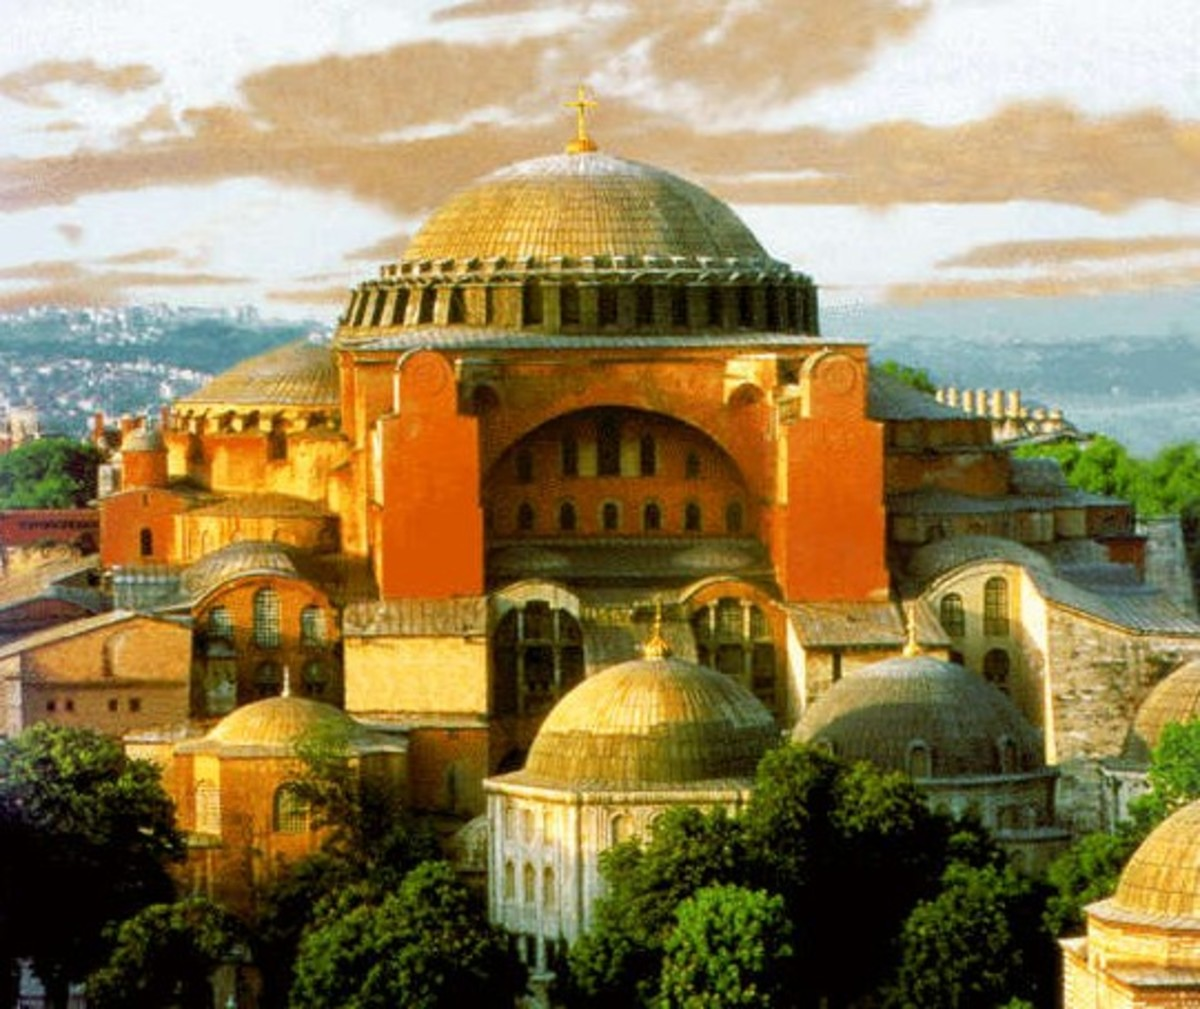 HAGIA SOPHIA CHURCH OF CONSTANTINOPLE